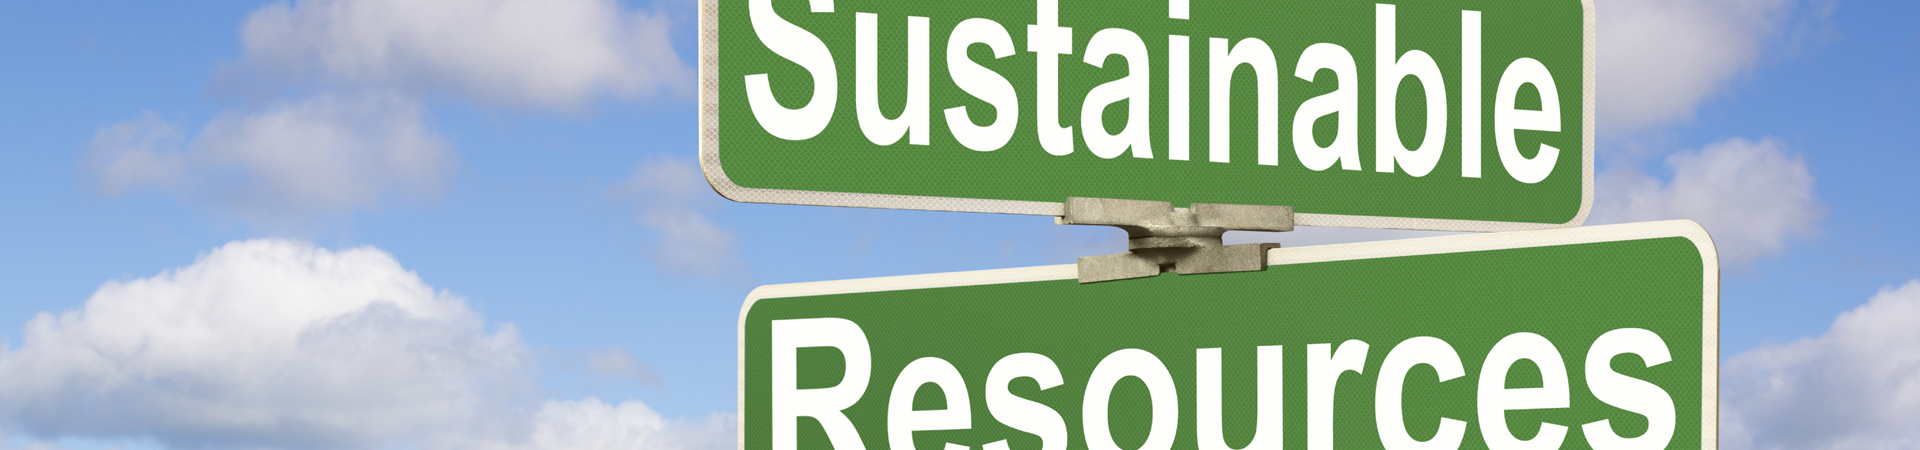 Signs saying sustainable and resorces